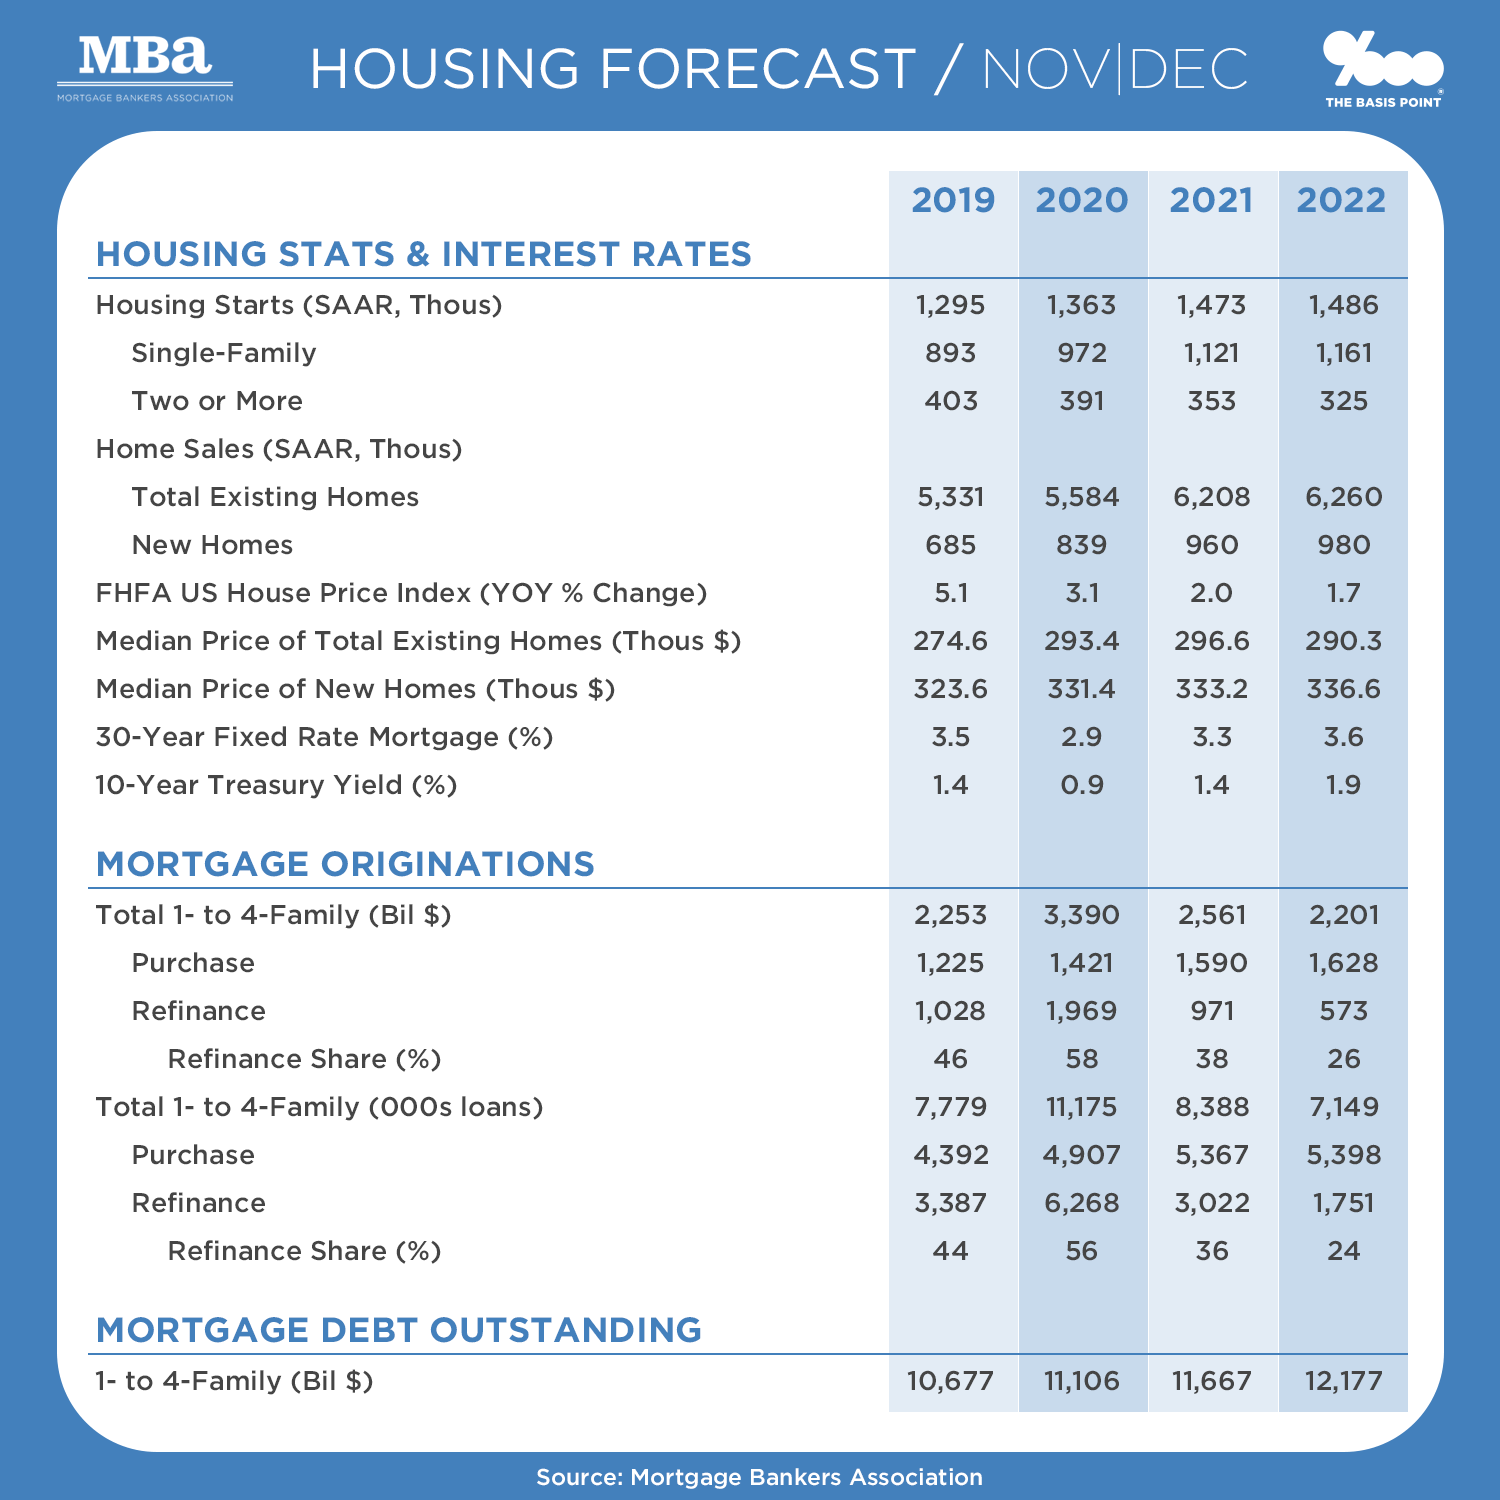 Home Prices, Mortgage Rates, Size of Mortgage Market 2020 to 2022 Outlook - MBA Data as of 2020-11 - The Basis Point